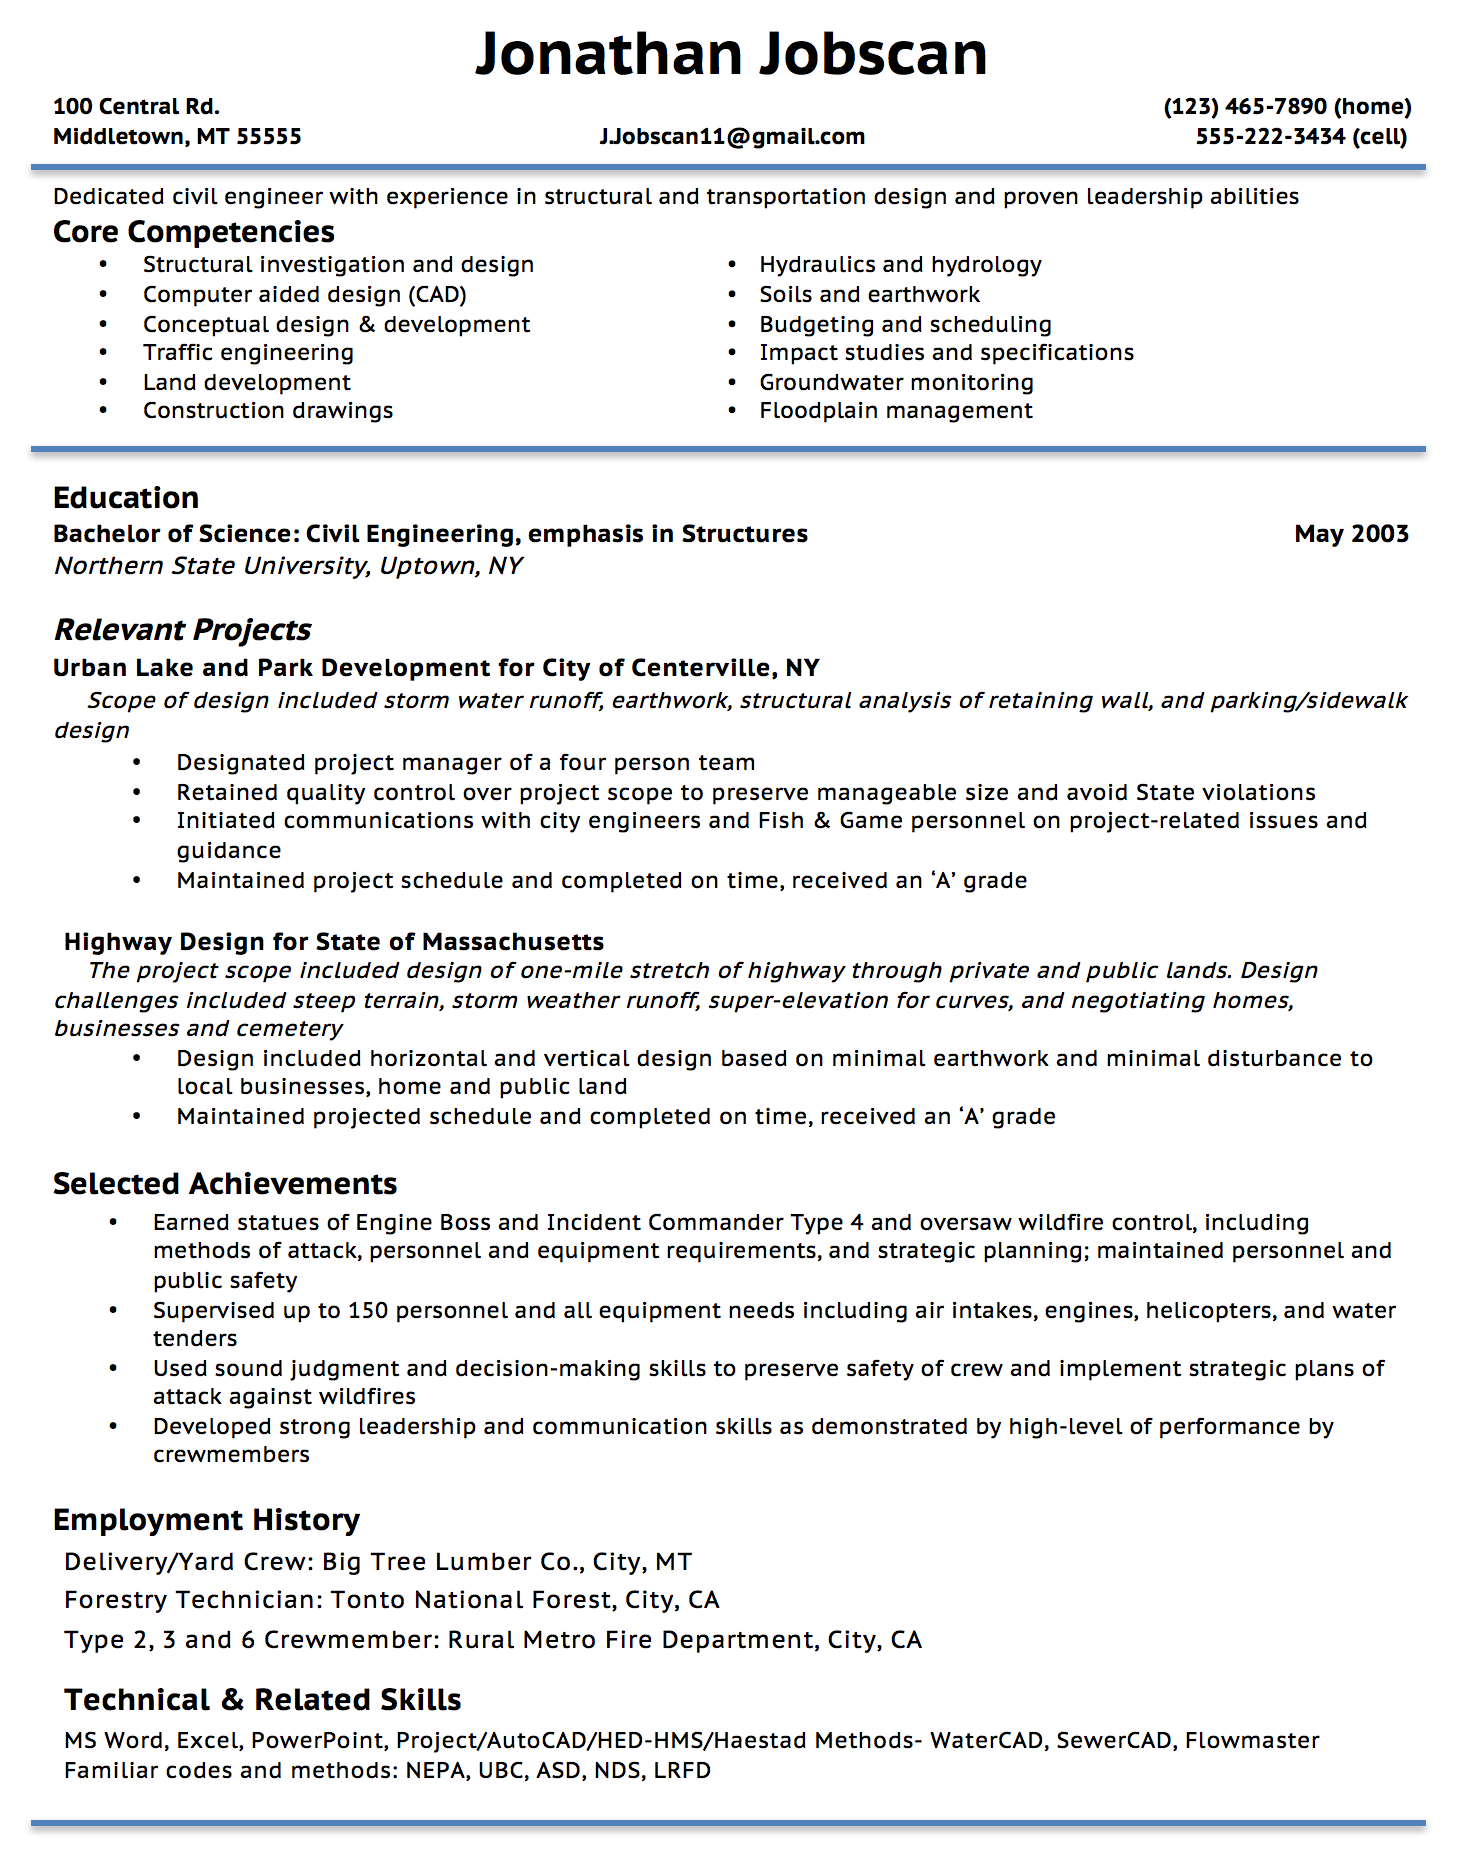 Opposenewapstandardsus  Ravishing Resume Writing Guide  Jobscan With Interesting Example Of A Functional Resume Format With Beautiful Impressive Resume Also Resume Books In Addition Is My Perfect Resume Free And Senior Financial Analyst Resume As Well As Paralegal Resume Sample Additionally Resume Tutorial From Jobscanco With Opposenewapstandardsus  Interesting Resume Writing Guide  Jobscan With Beautiful Example Of A Functional Resume Format And Ravishing Impressive Resume Also Resume Books In Addition Is My Perfect Resume Free From Jobscanco